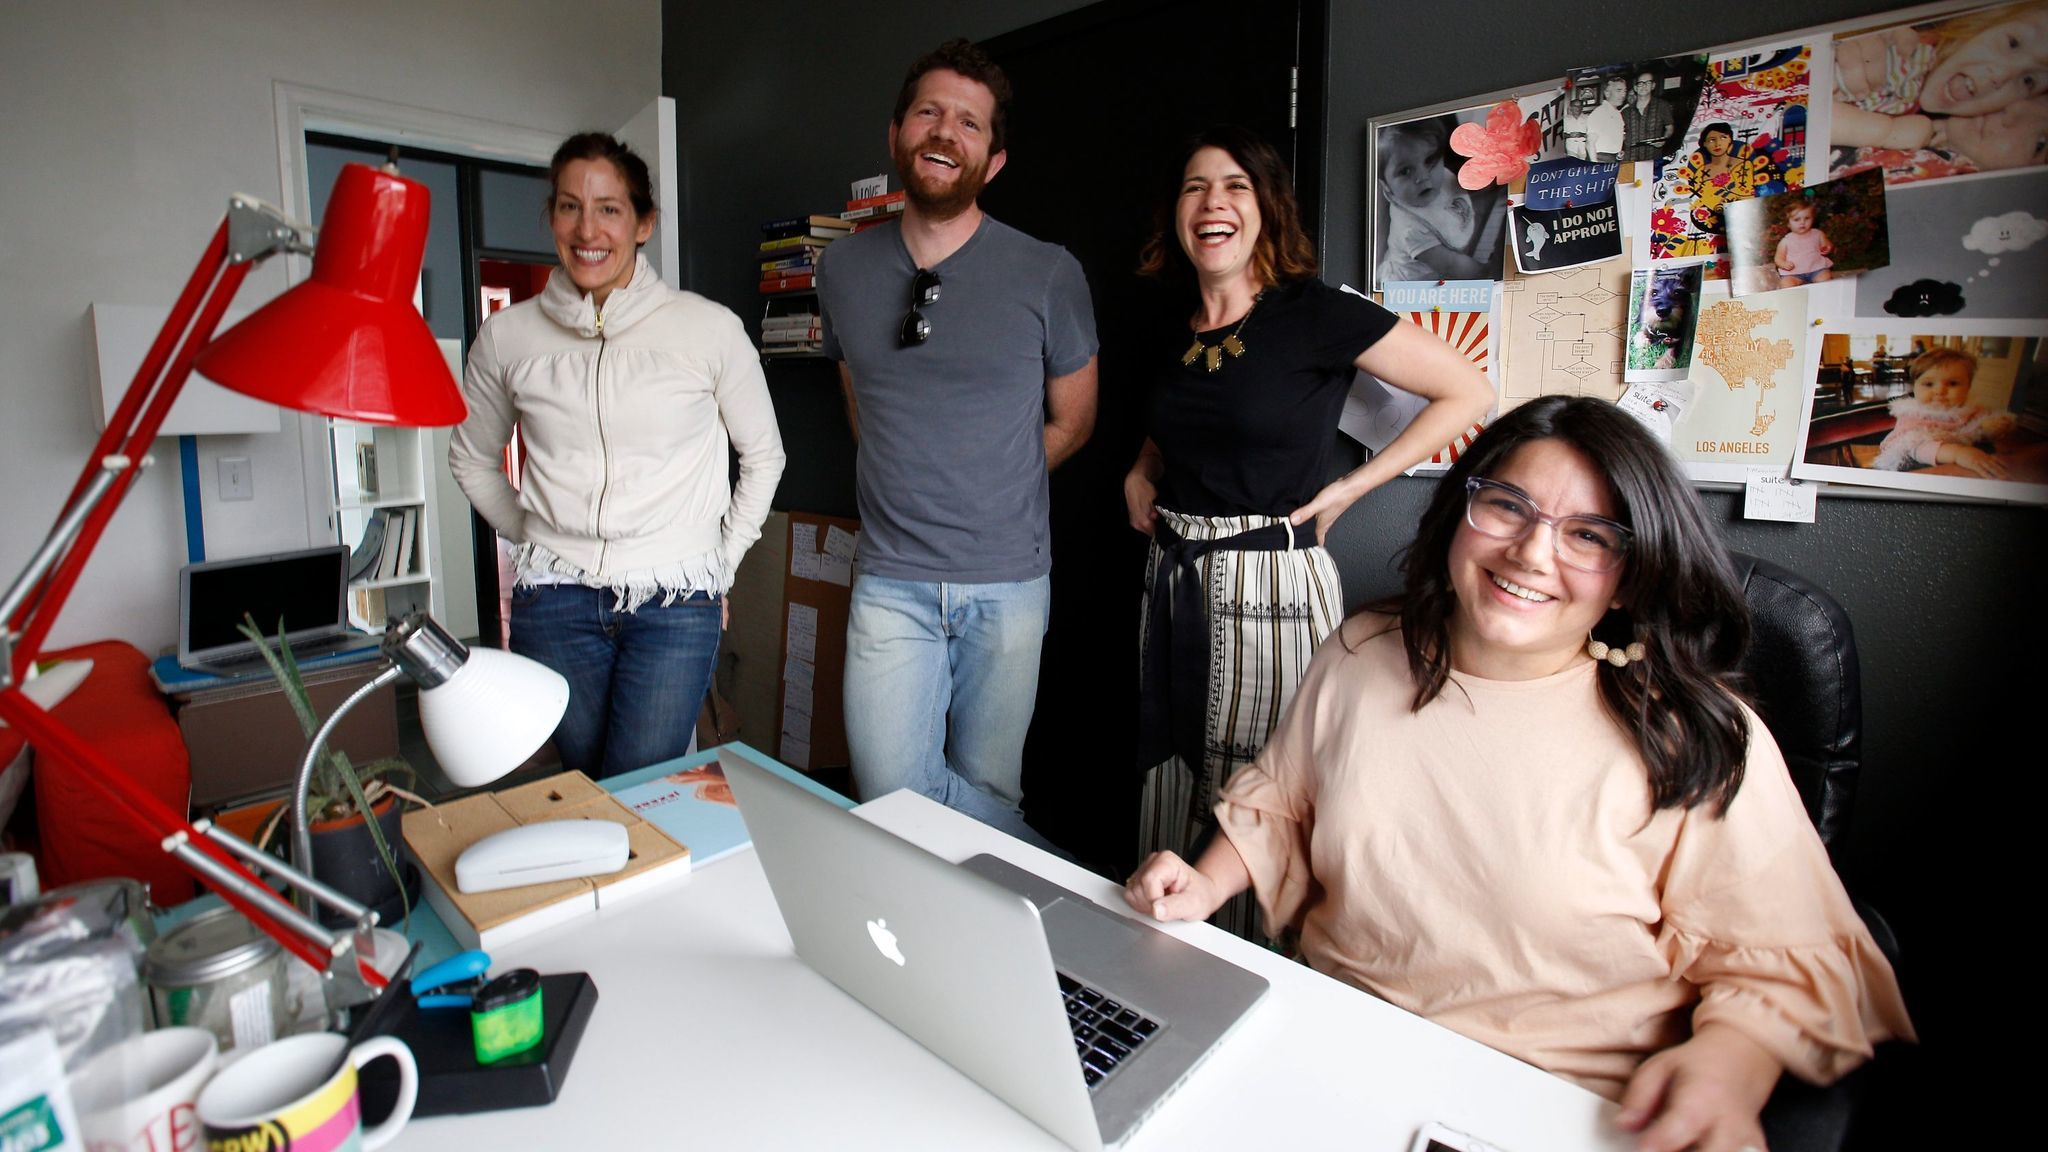 Janelle Brown, second from right, shares the Silver Lake writing space Suite 8 with, from left, Erica Rothschild, Joshua Seumer and Carina Chocano.